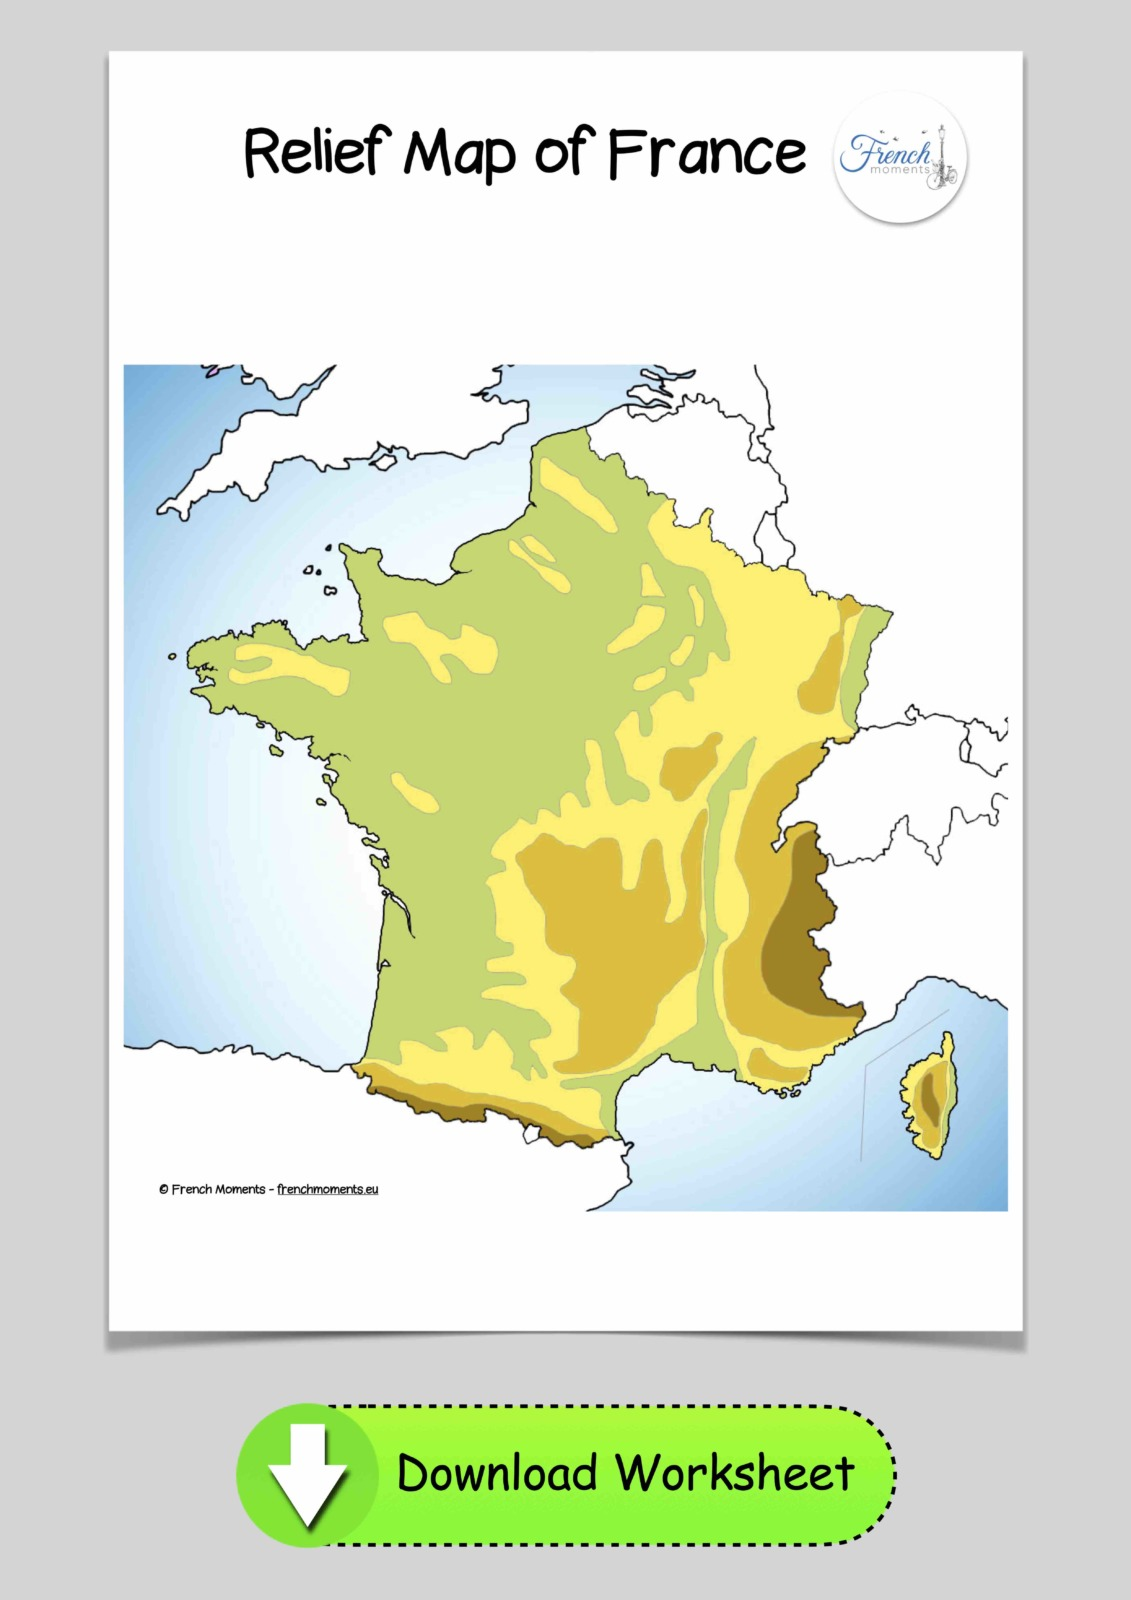 Blank Map of France Relief © French Moments